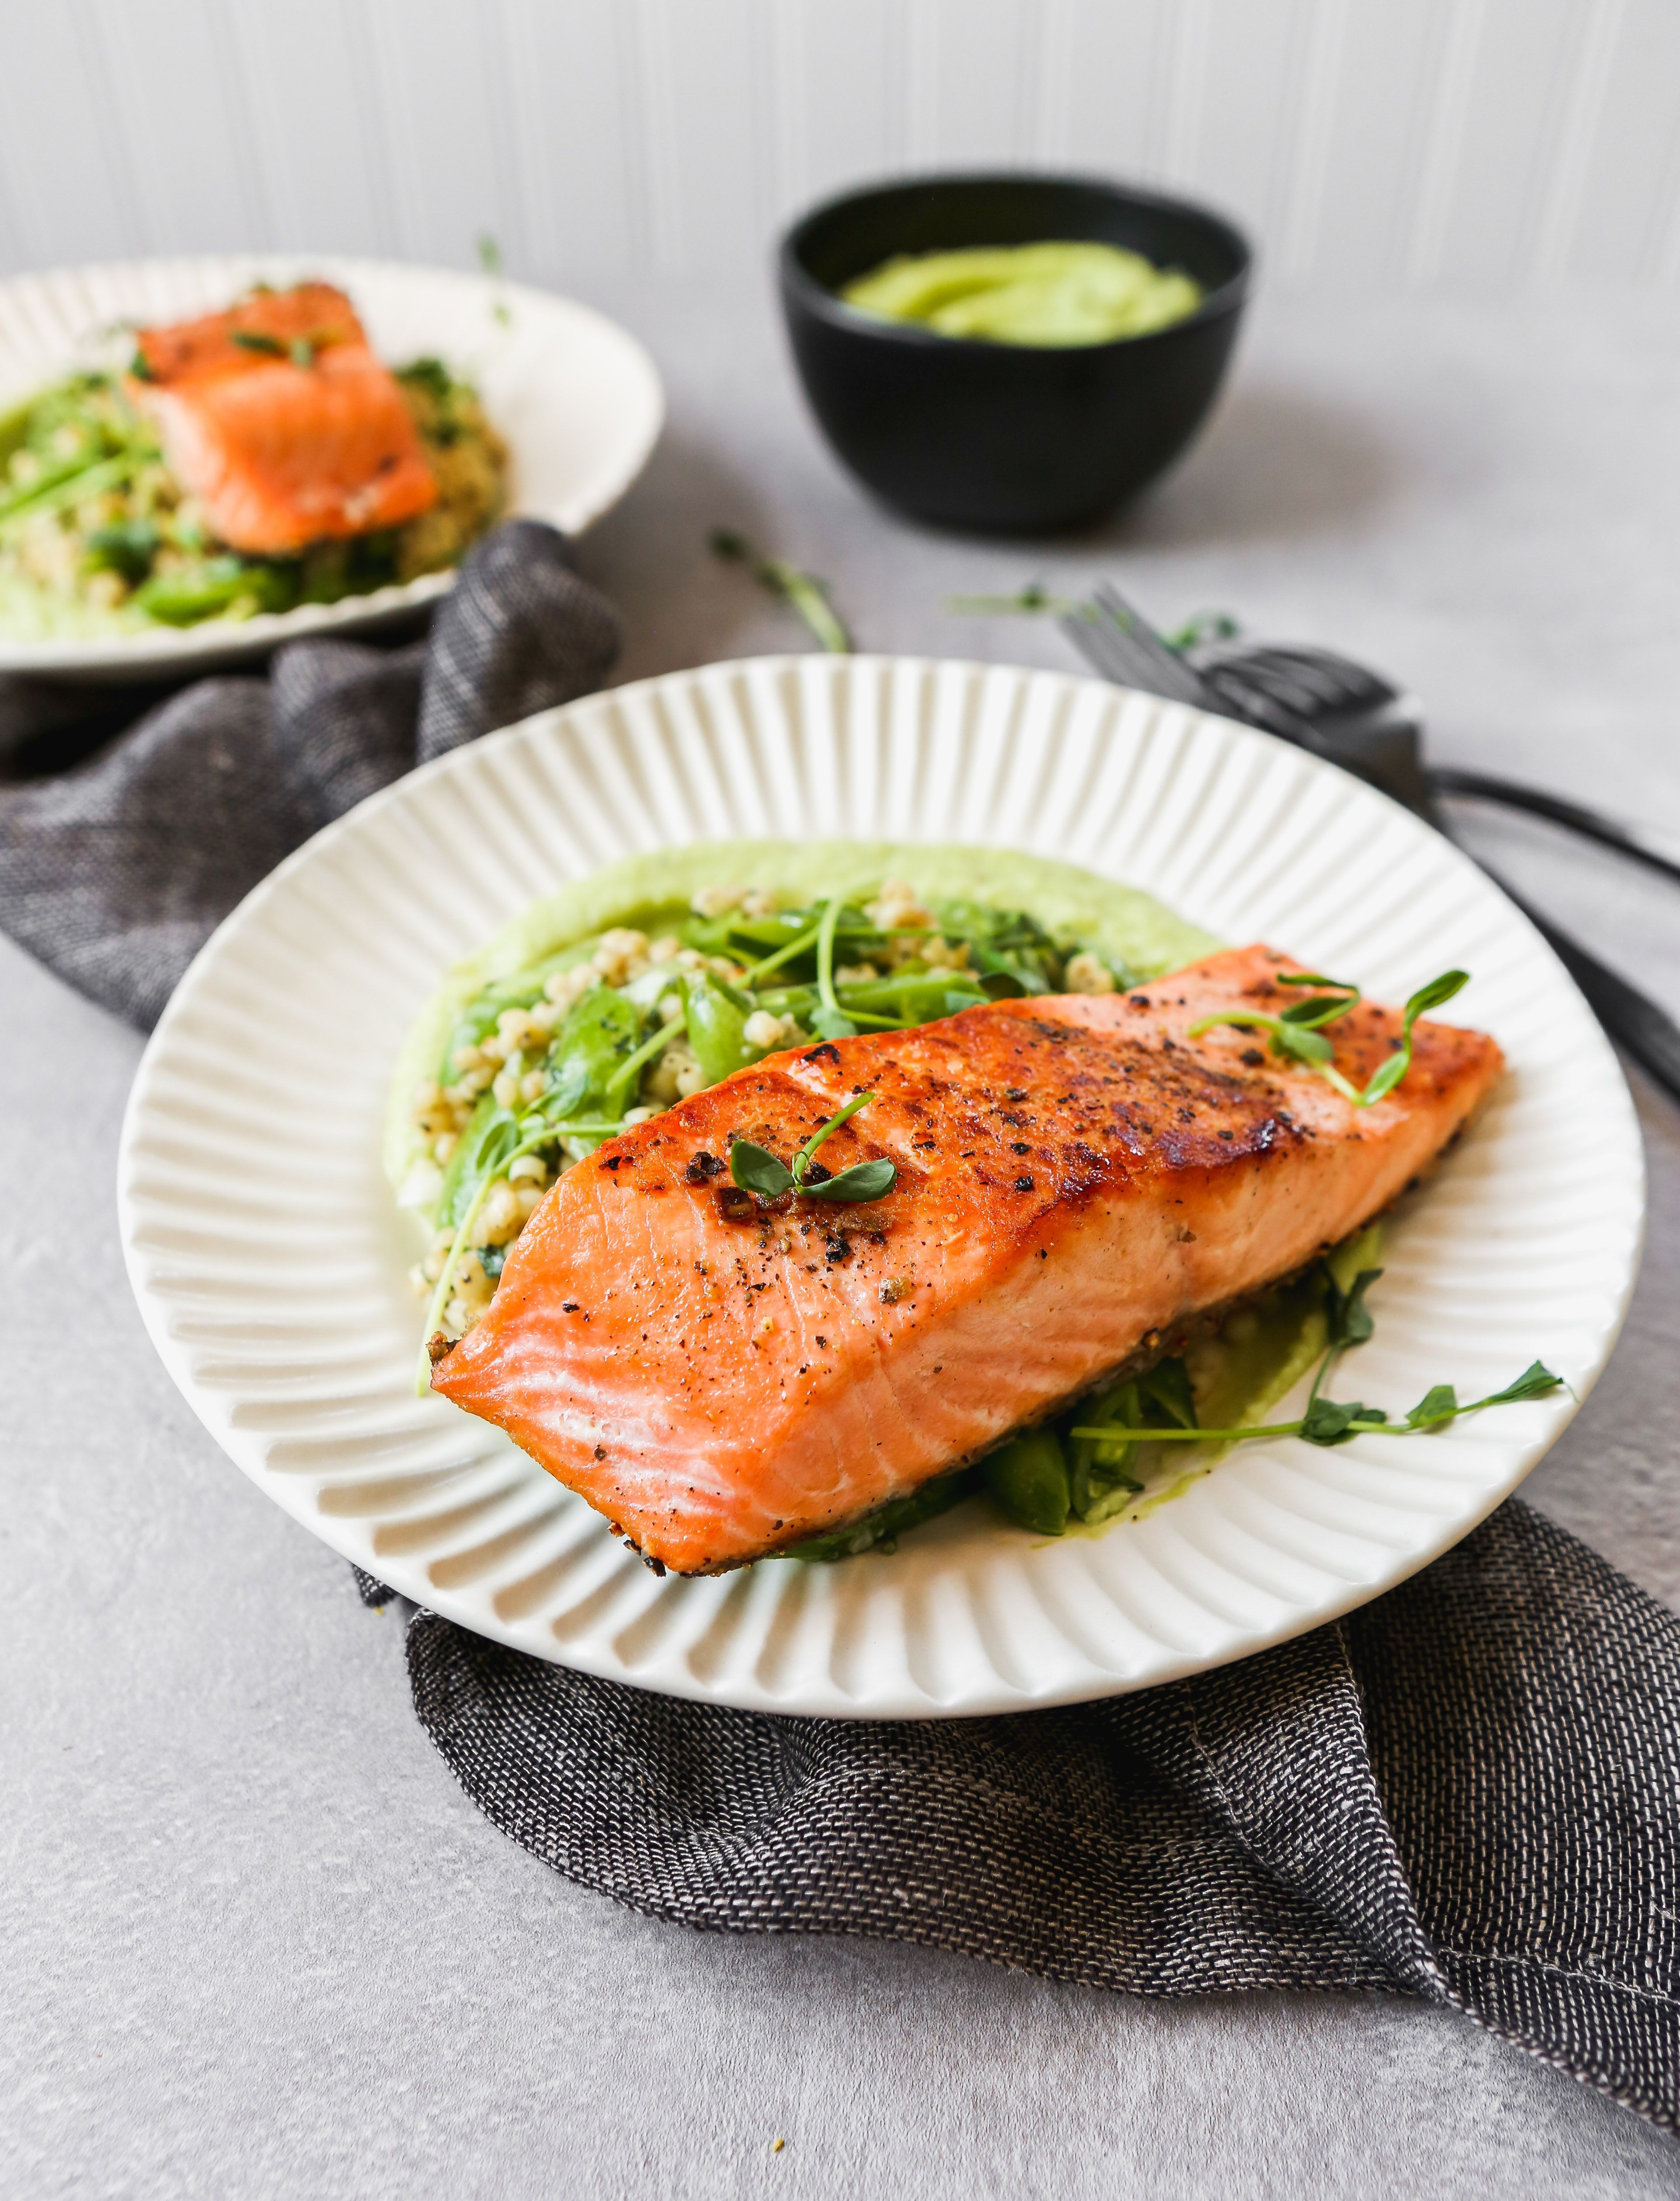 Pan Seared Salmon with Leek Purée and Sorghum Pilaf #searedsalmonrecipes Make the perfect seared salmon with this simple, yet surprising, recipe. Then serve it with a flavorful leek purée and a healthful sorghum pilaf for a fresh, healthy dinner. #salmon #healthy #glutenfree #dinner #searedsalmonrecipes